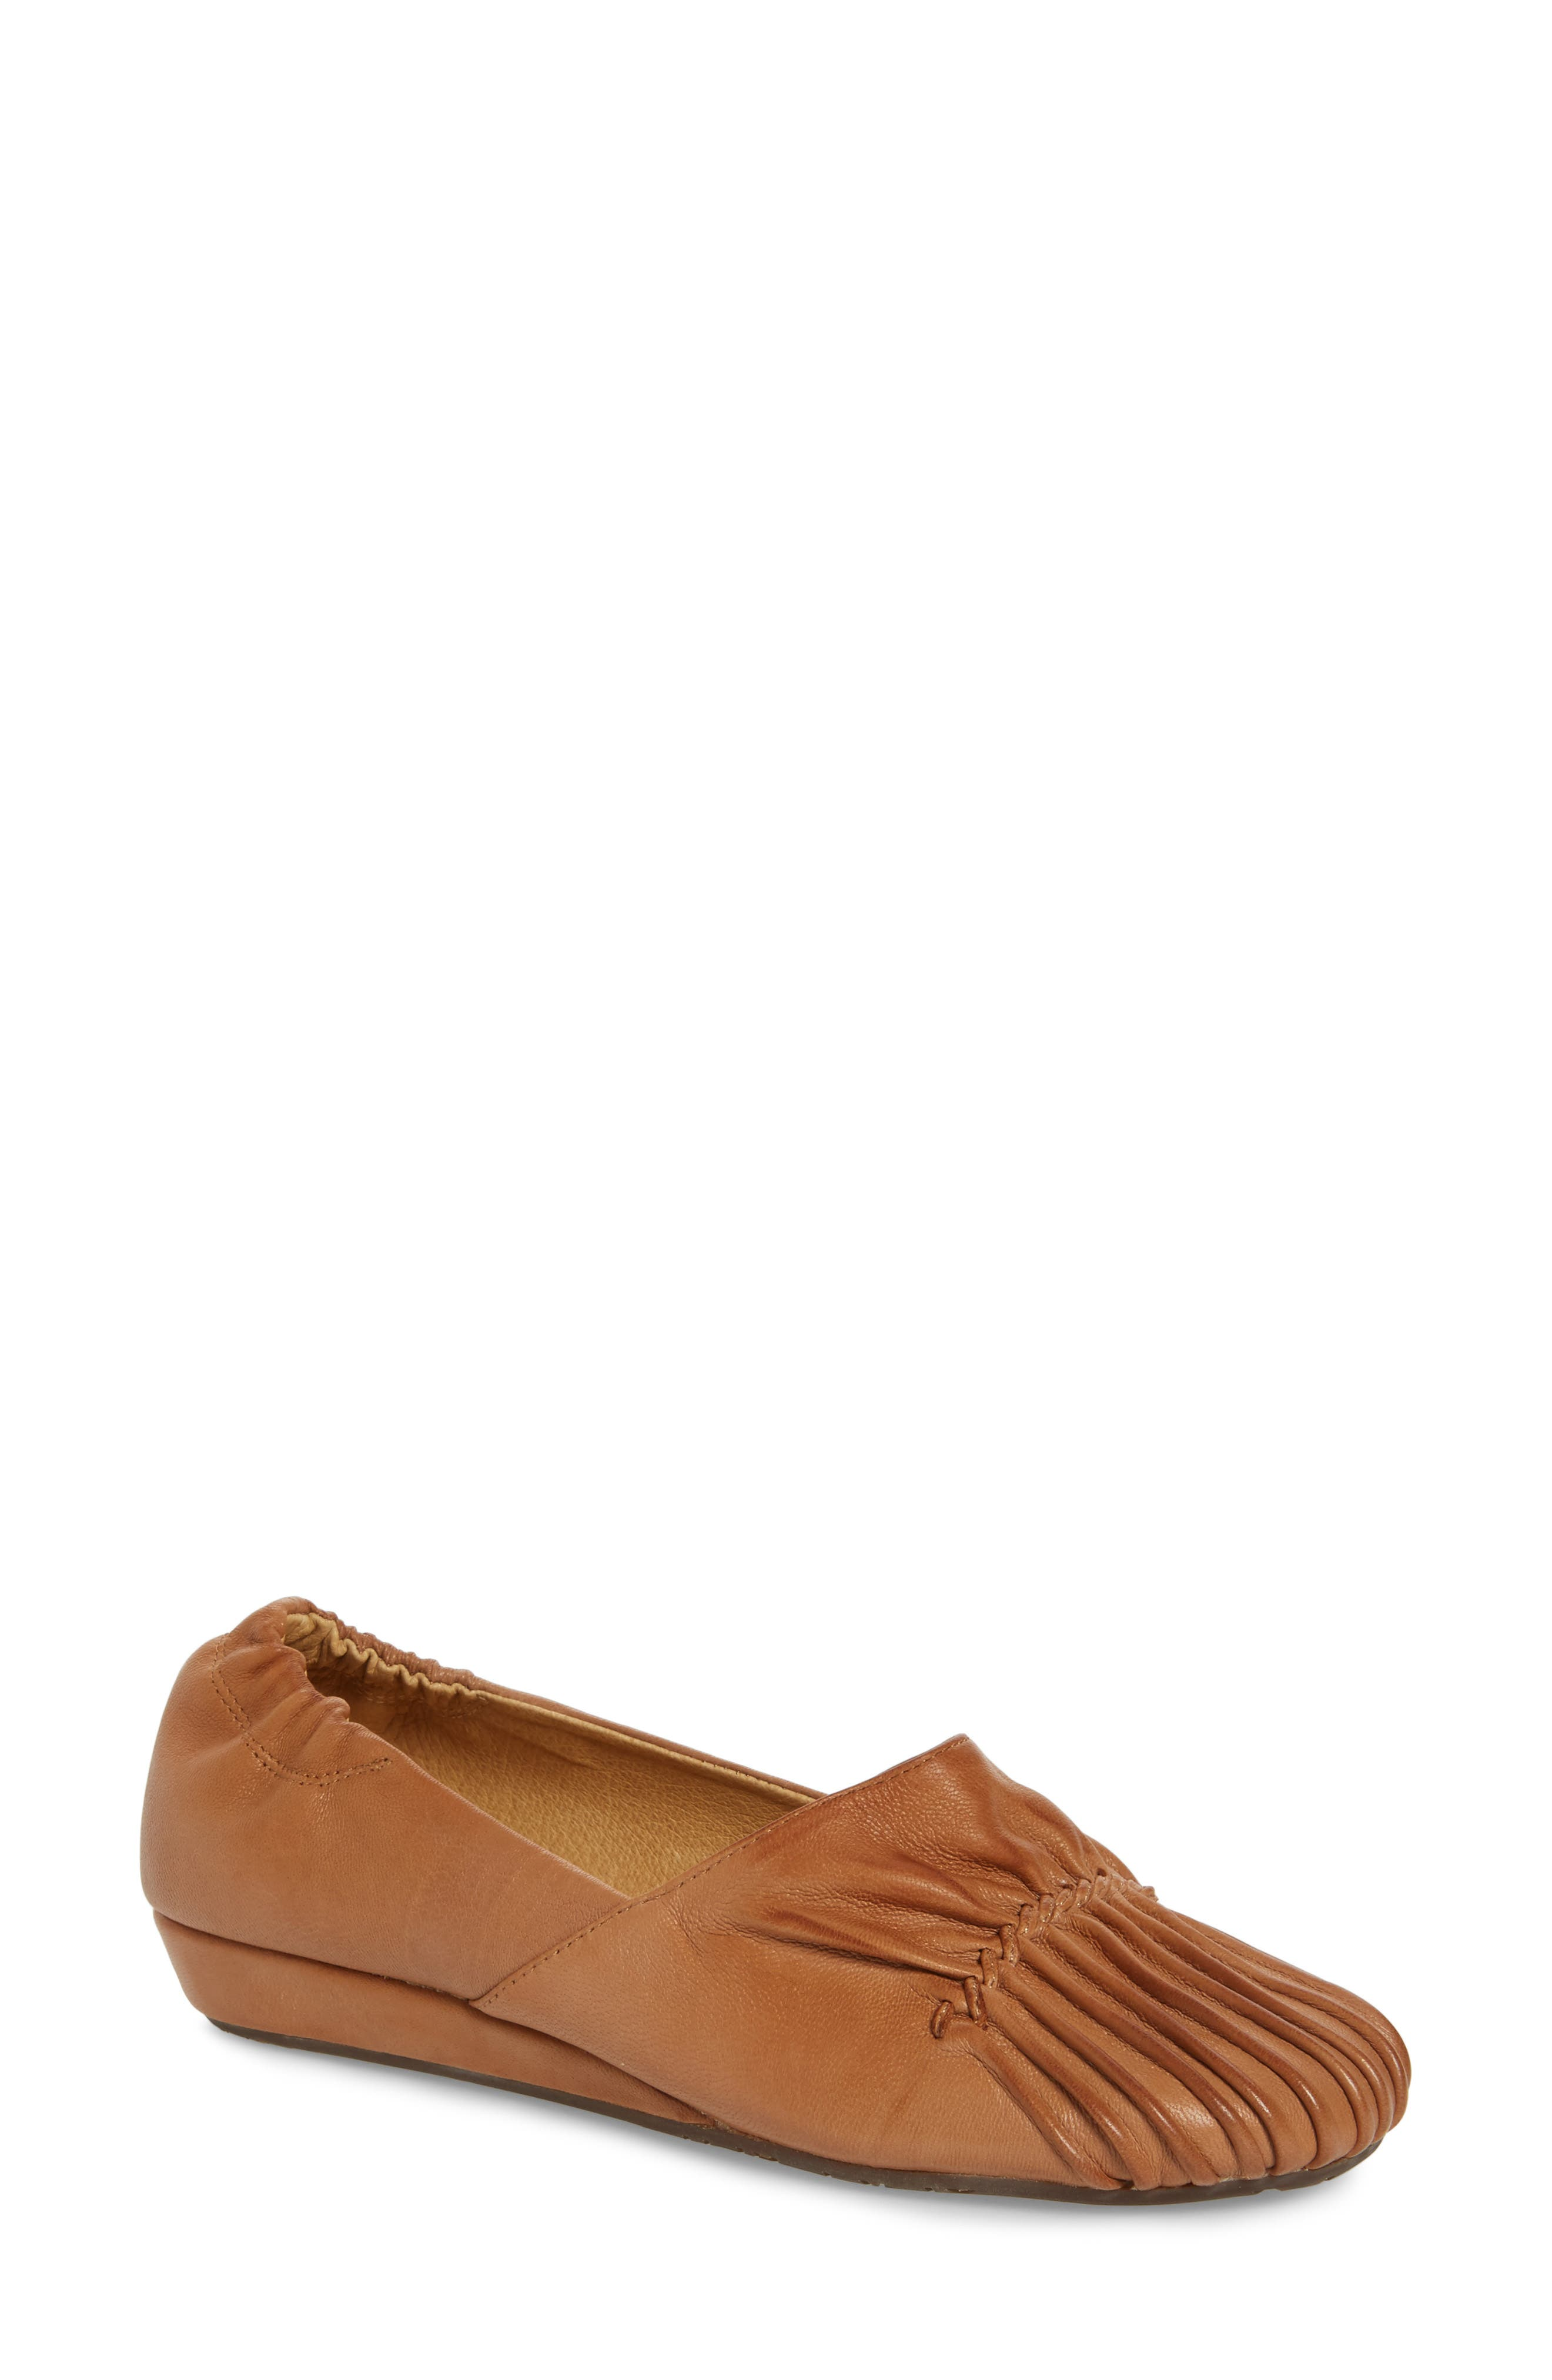 Vic Low Pleated Wedge,                         Main,                         color, 200